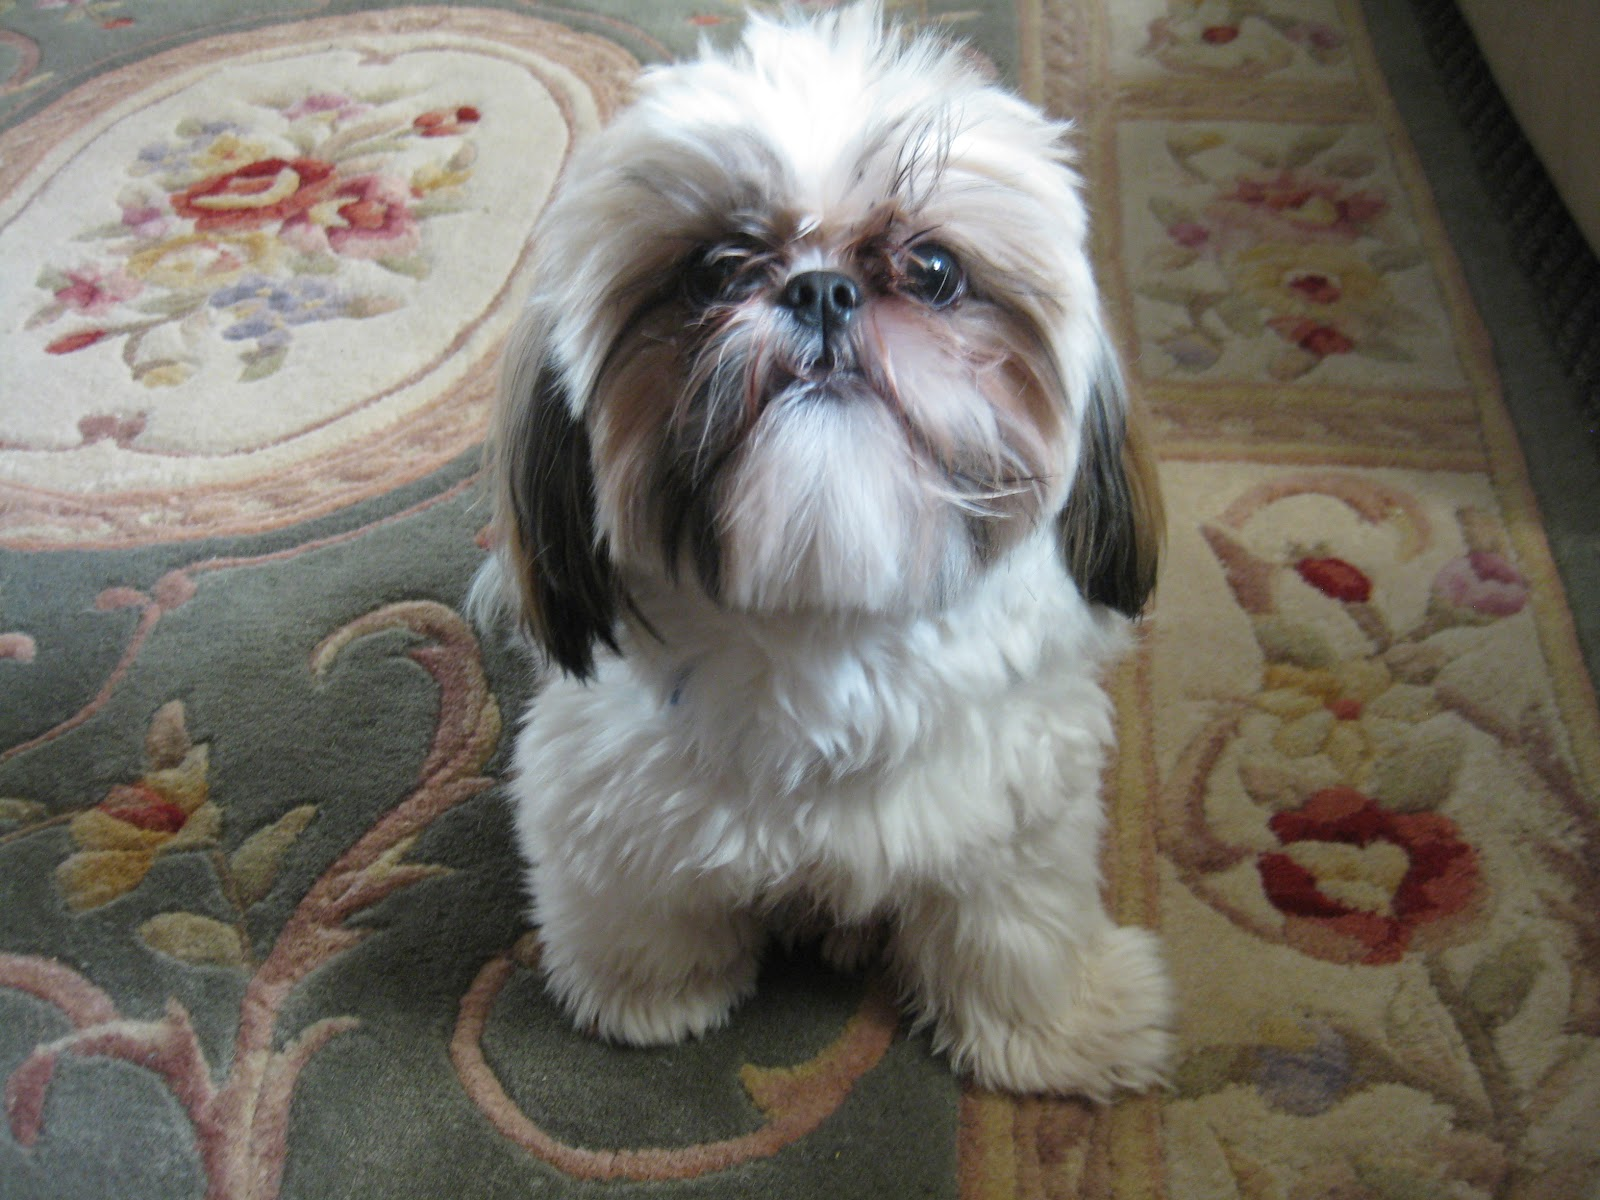 Add photos Shih Tzu dog on the carpet in your blog: